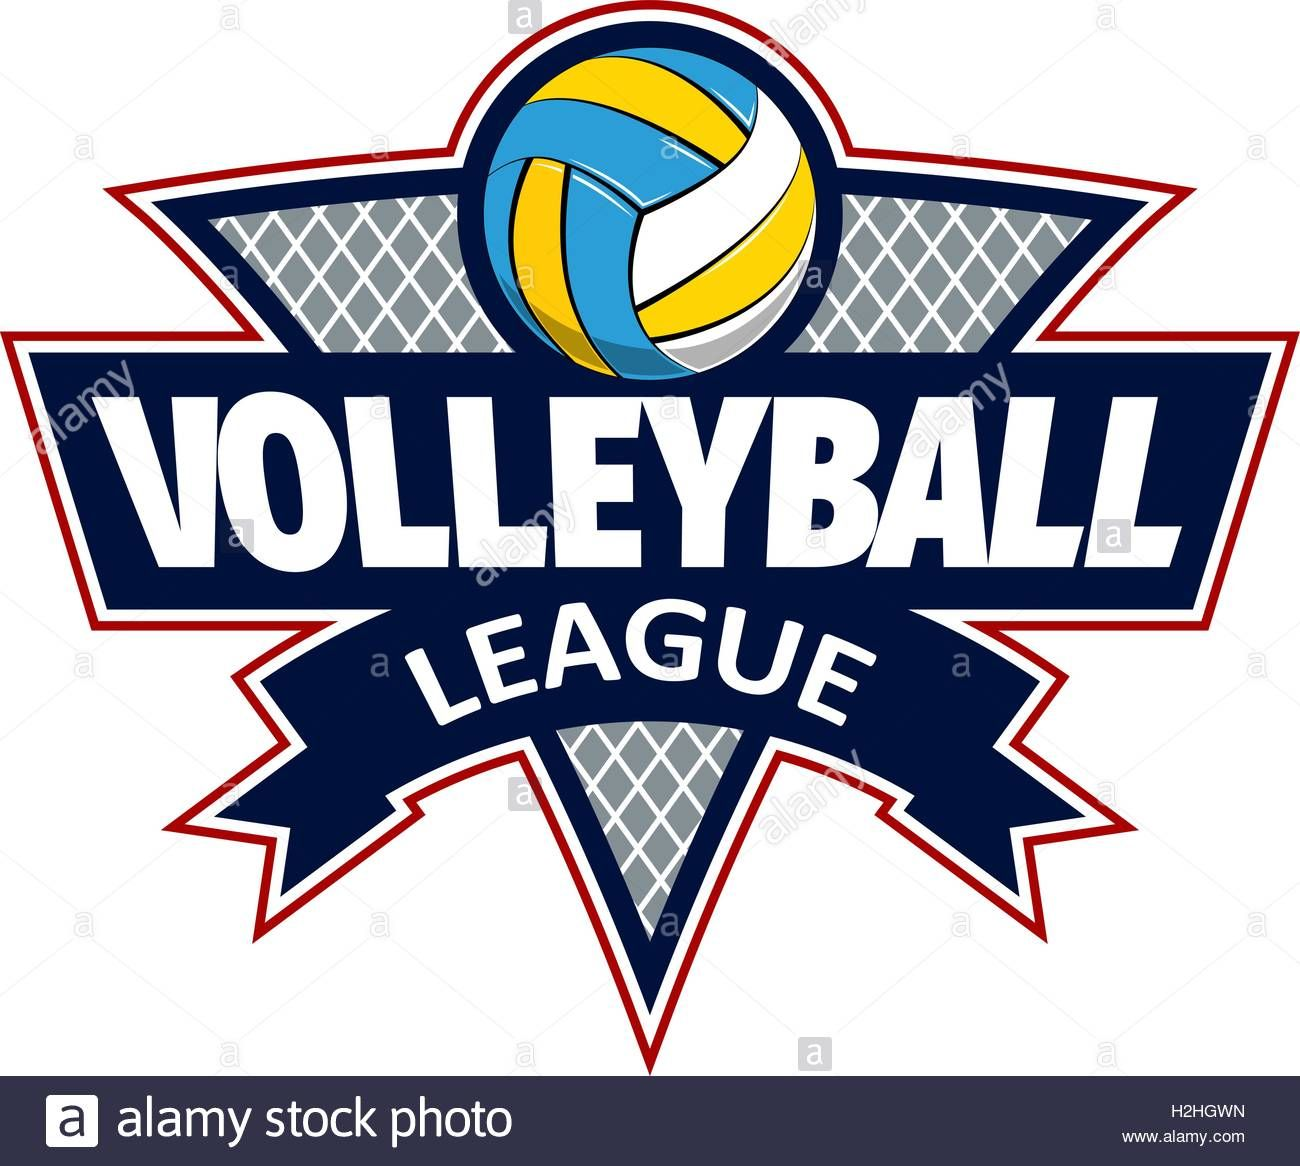 Pin by Joe Blow on volleyball logo Logos, Volleyball